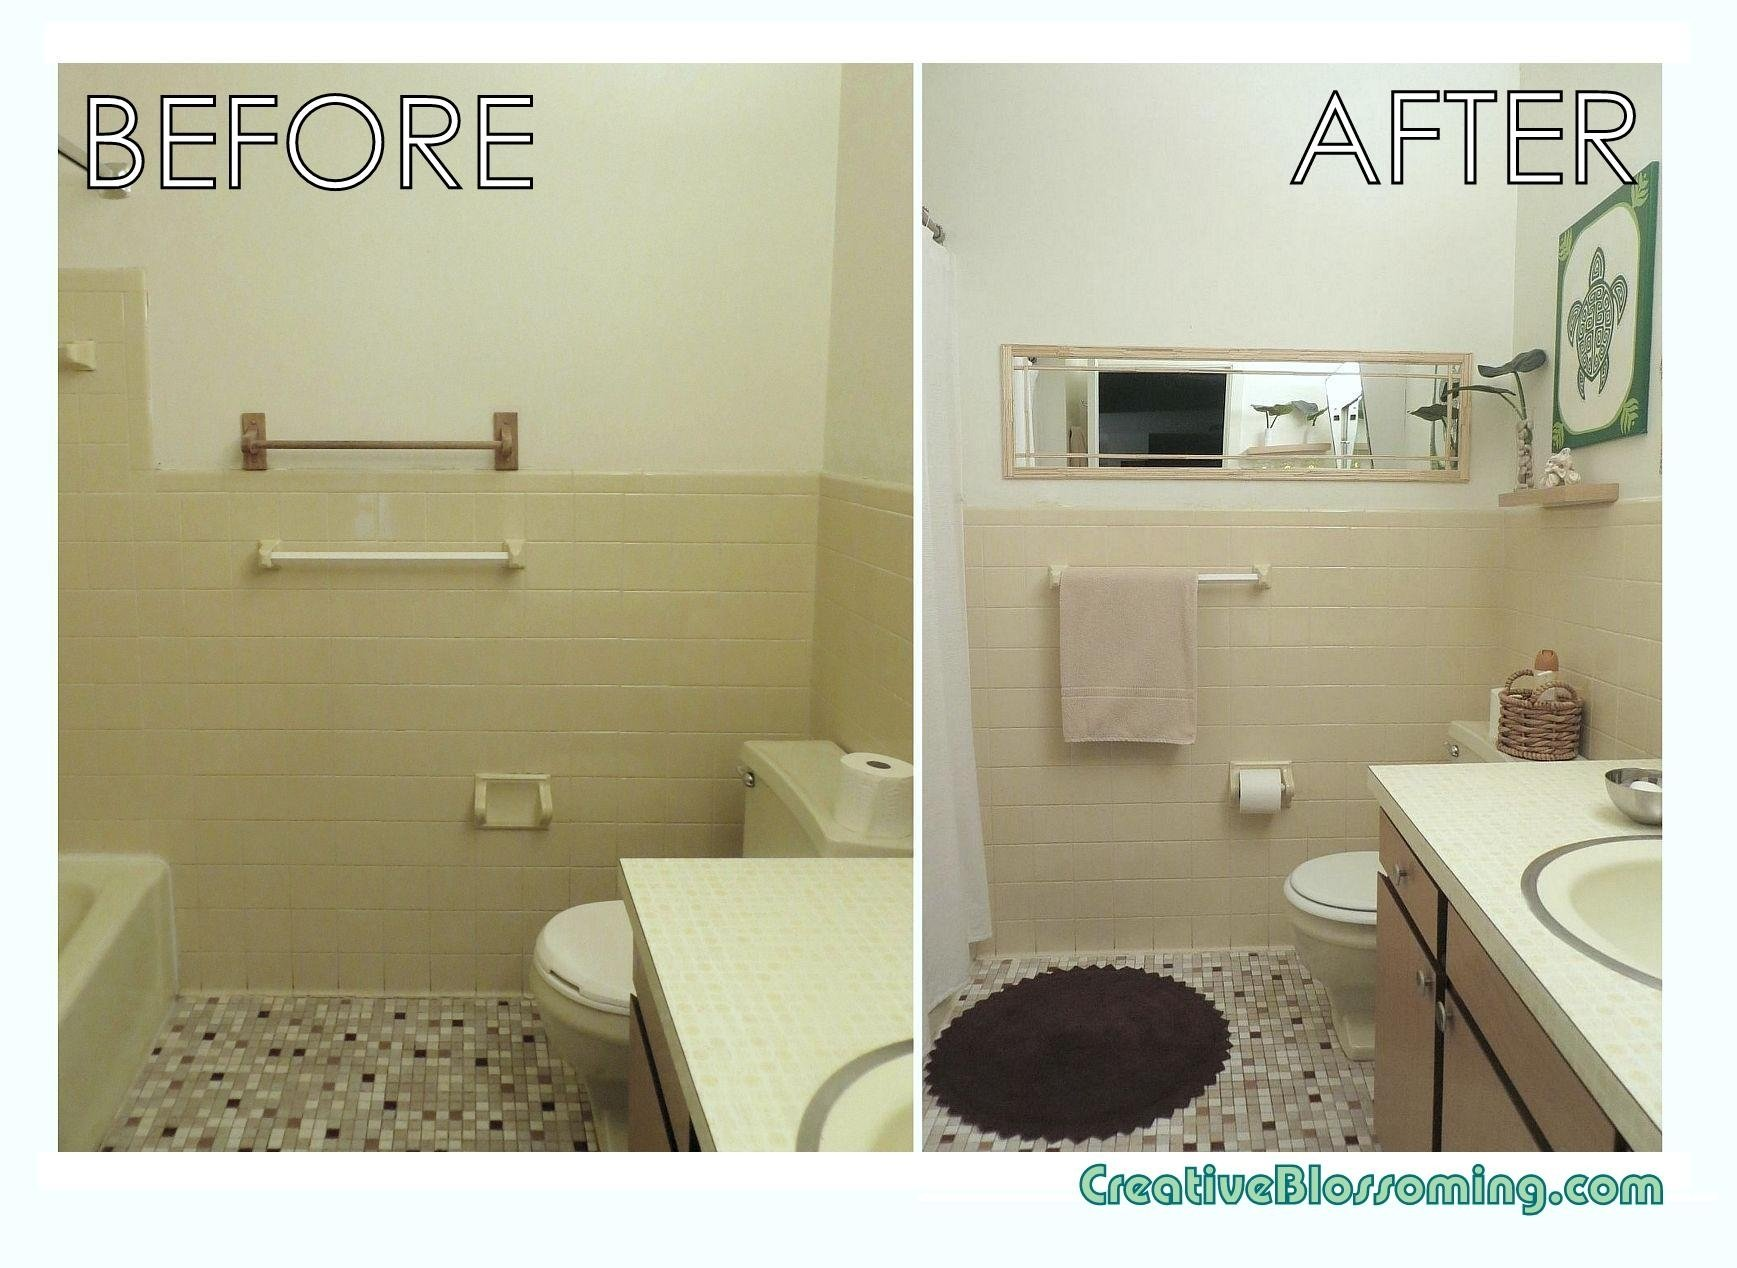 10 Famous Small Apartment Bathroom Decorating Ideas apartment minimalis bathroom decorating ideas apartments for awesome